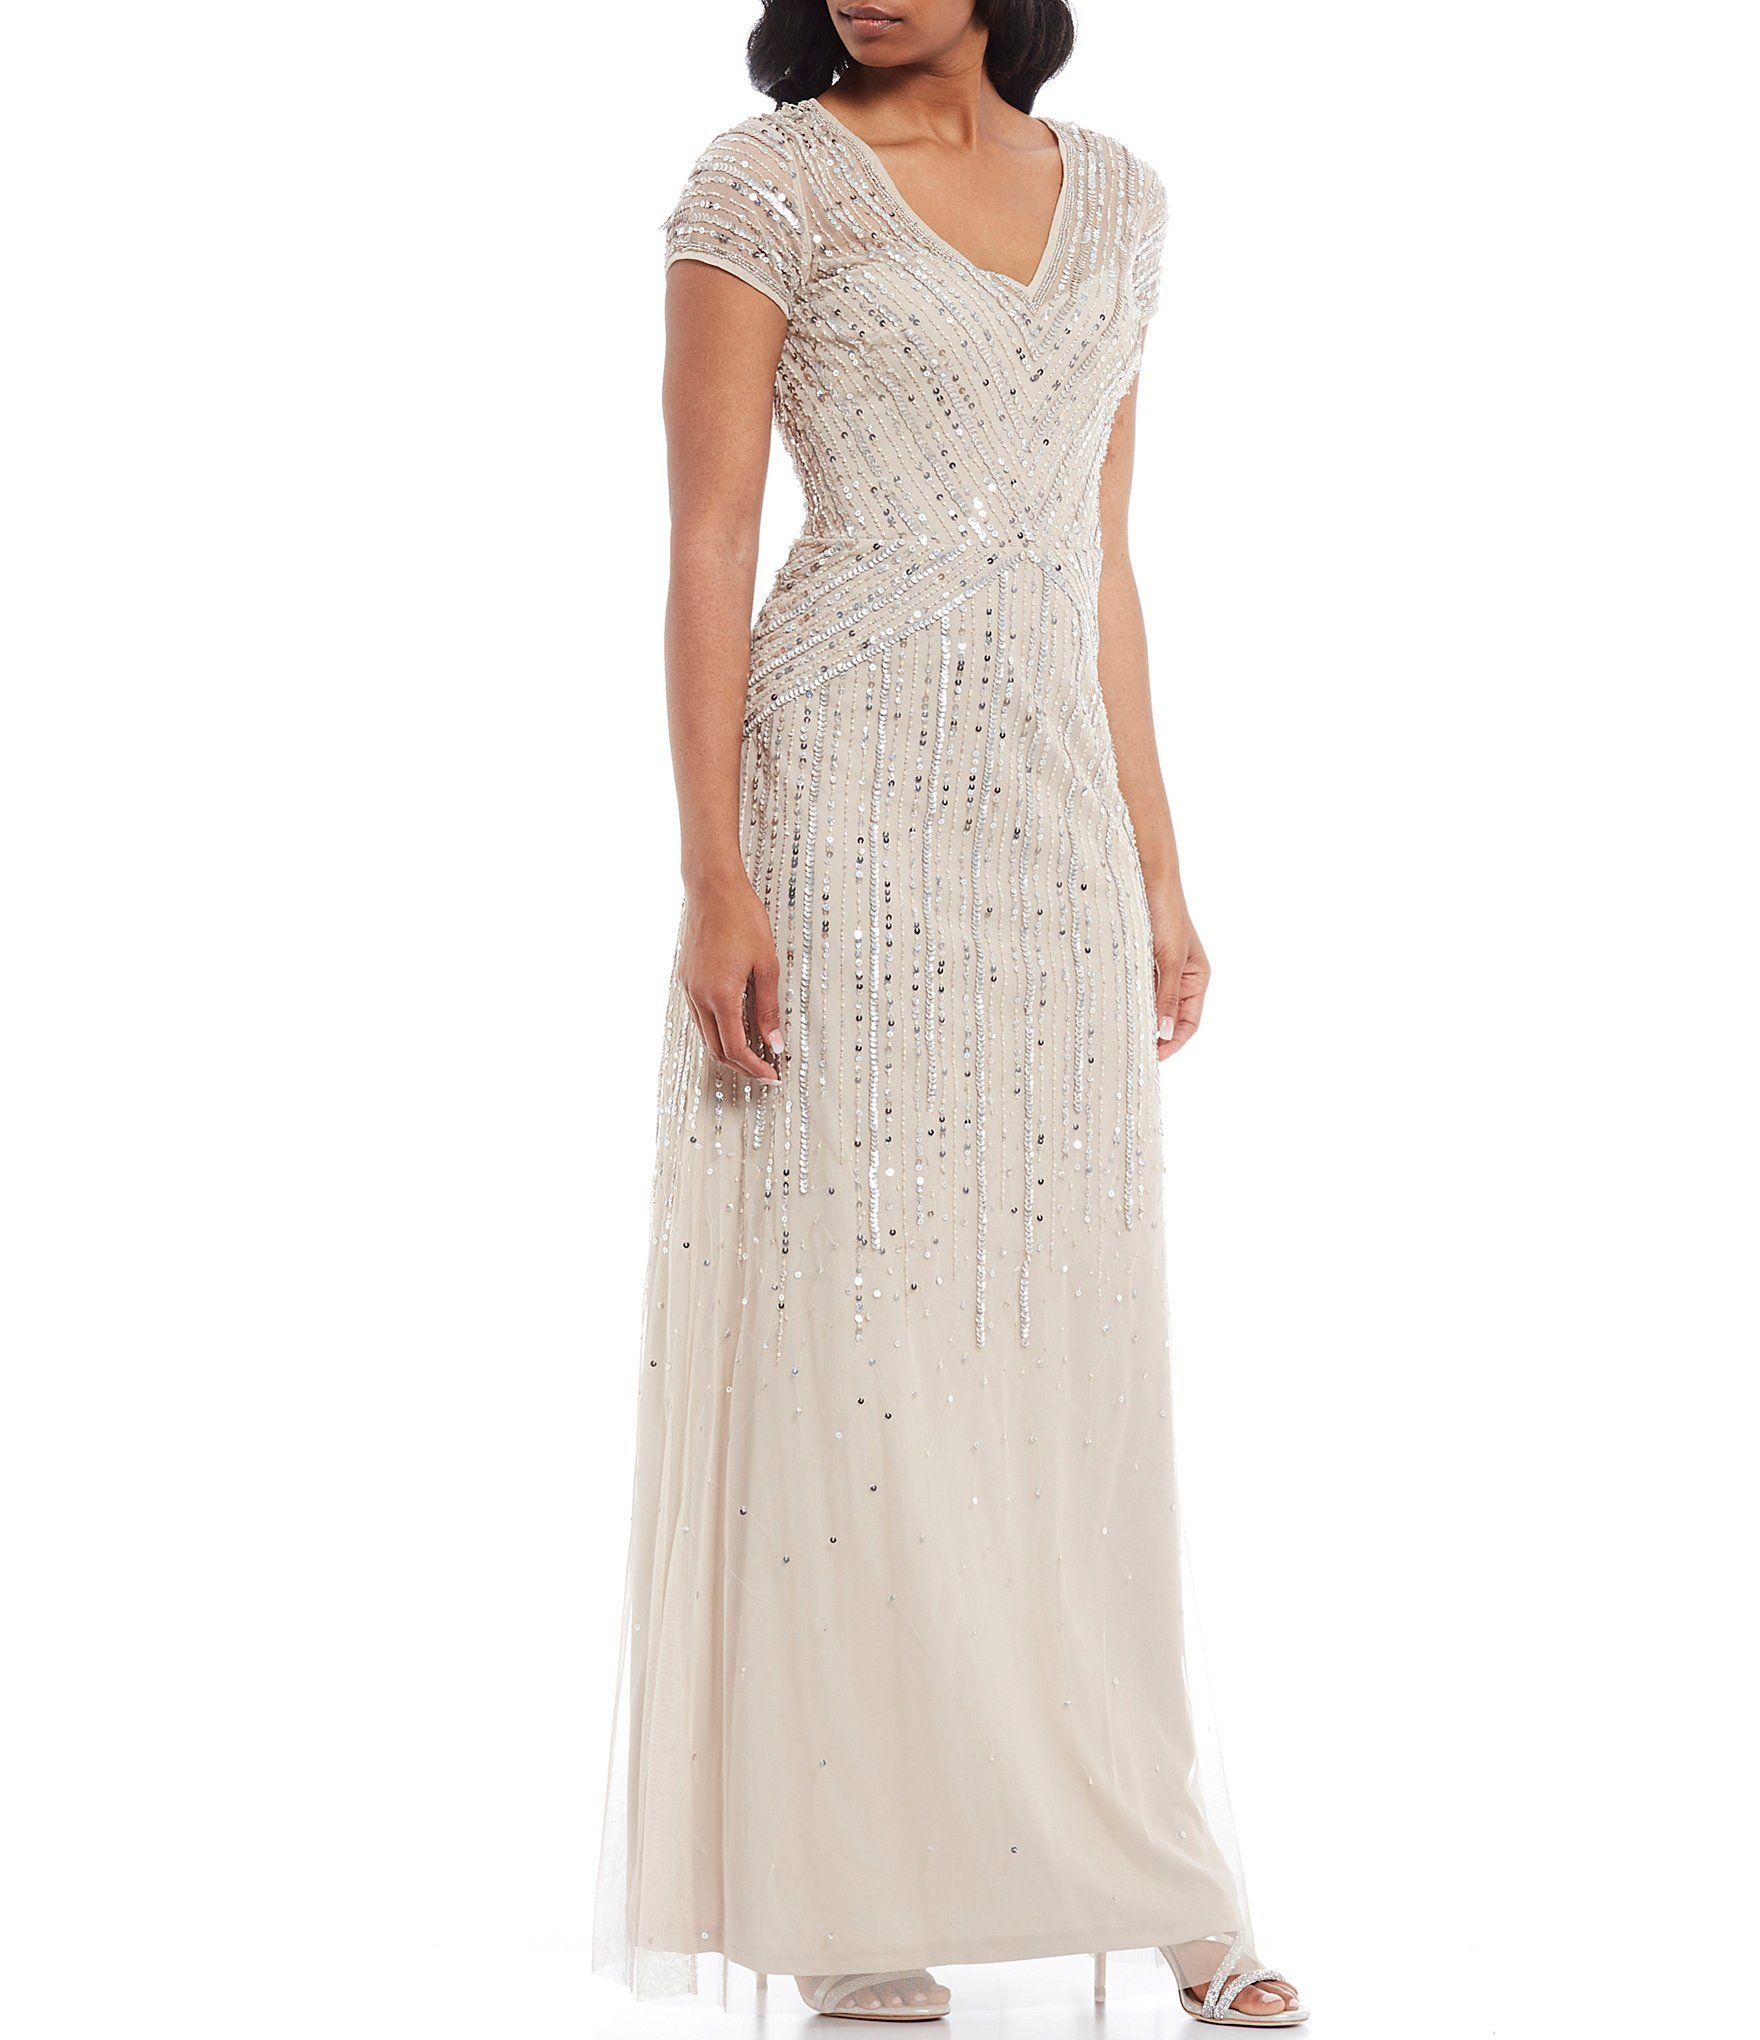 Adrianna Papell V Neck Short Sleeve Beaded A Line Gown Dillard S In 2020 A Line Gown Sheeth Dress Gowns